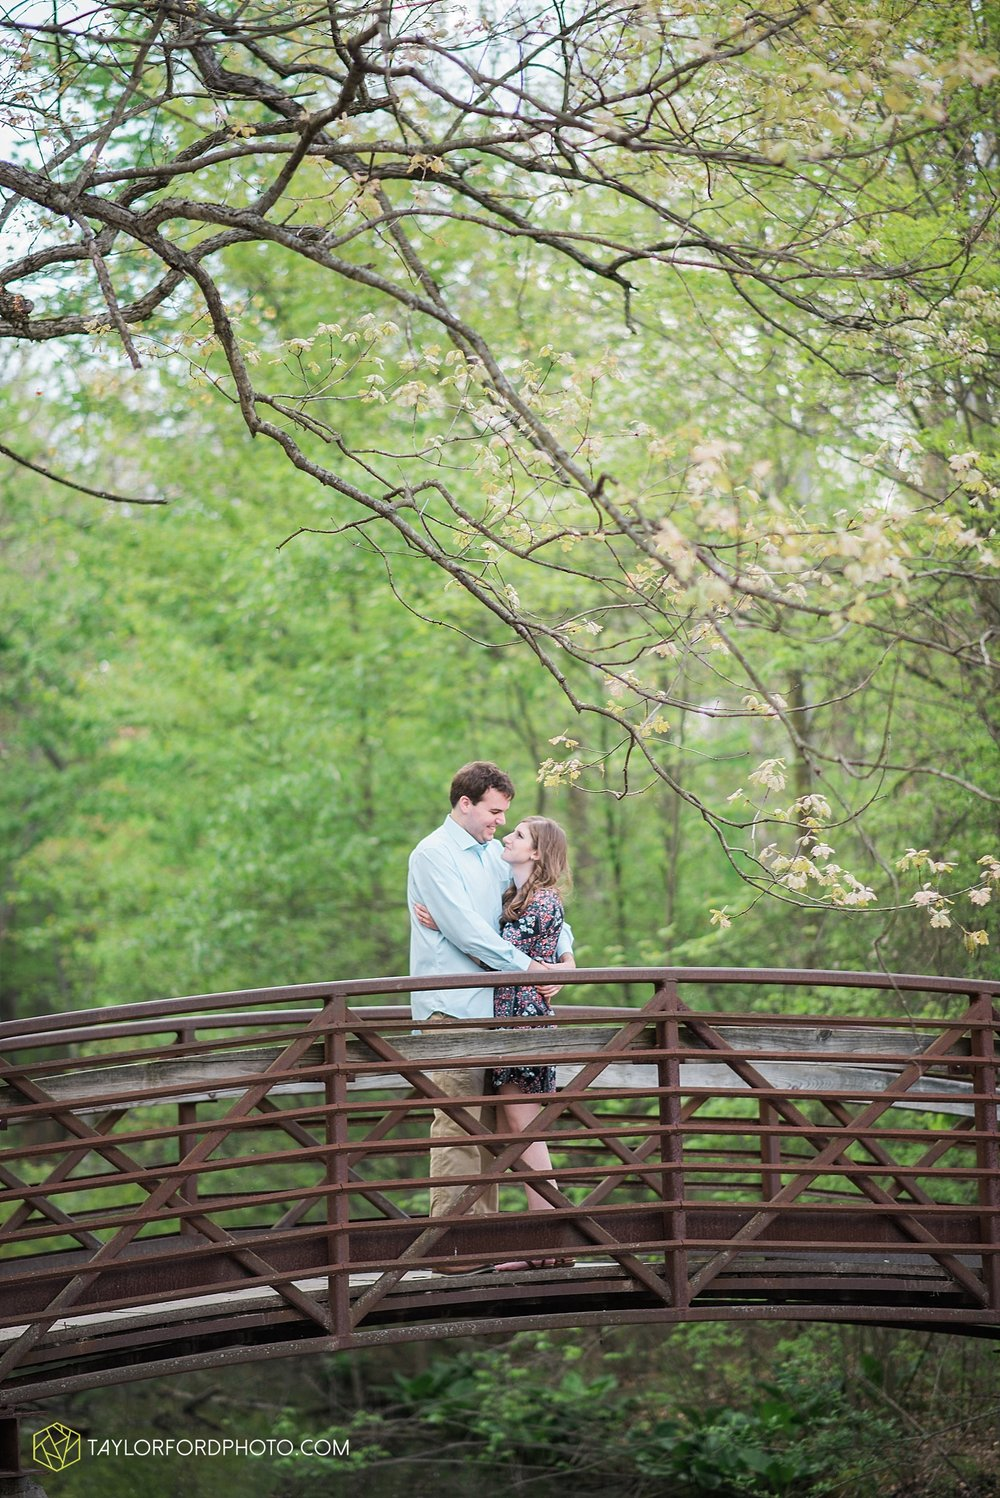 toledo-ohio-engagement-wedding-photographer-taylor-ford-photography-oaks-opening-metro-park-botanical-gardens17.jpg